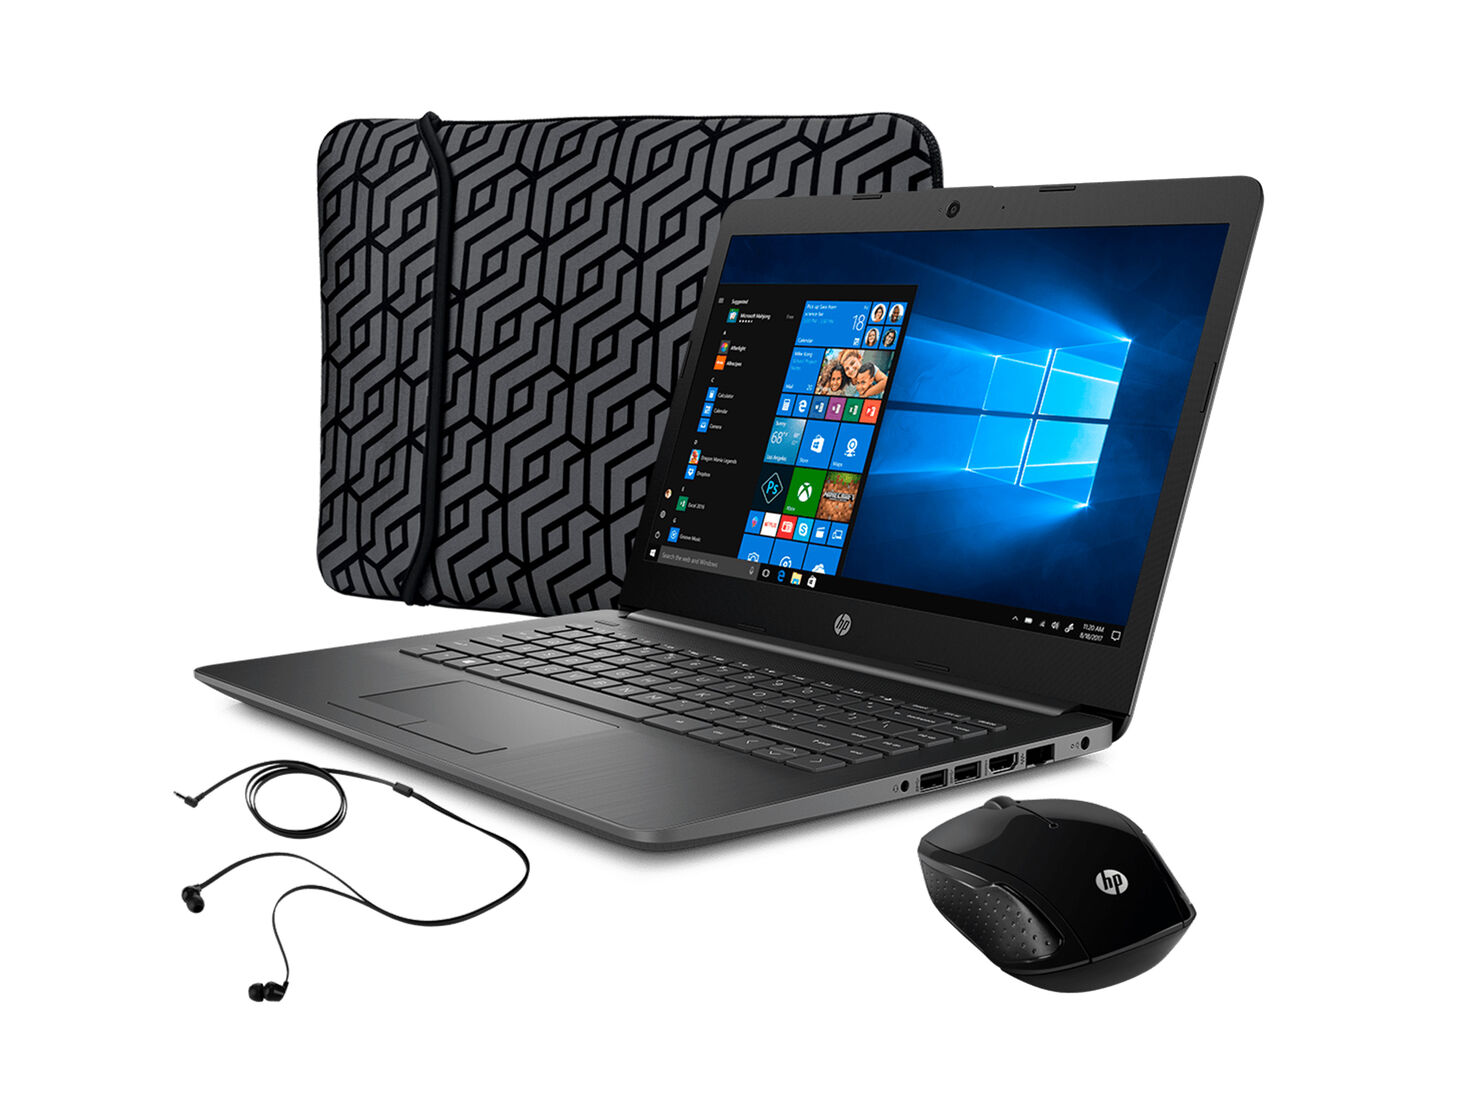 Notebook HP 14-ck0039la Intel Celeron N4000 4GB 500GB 14.0